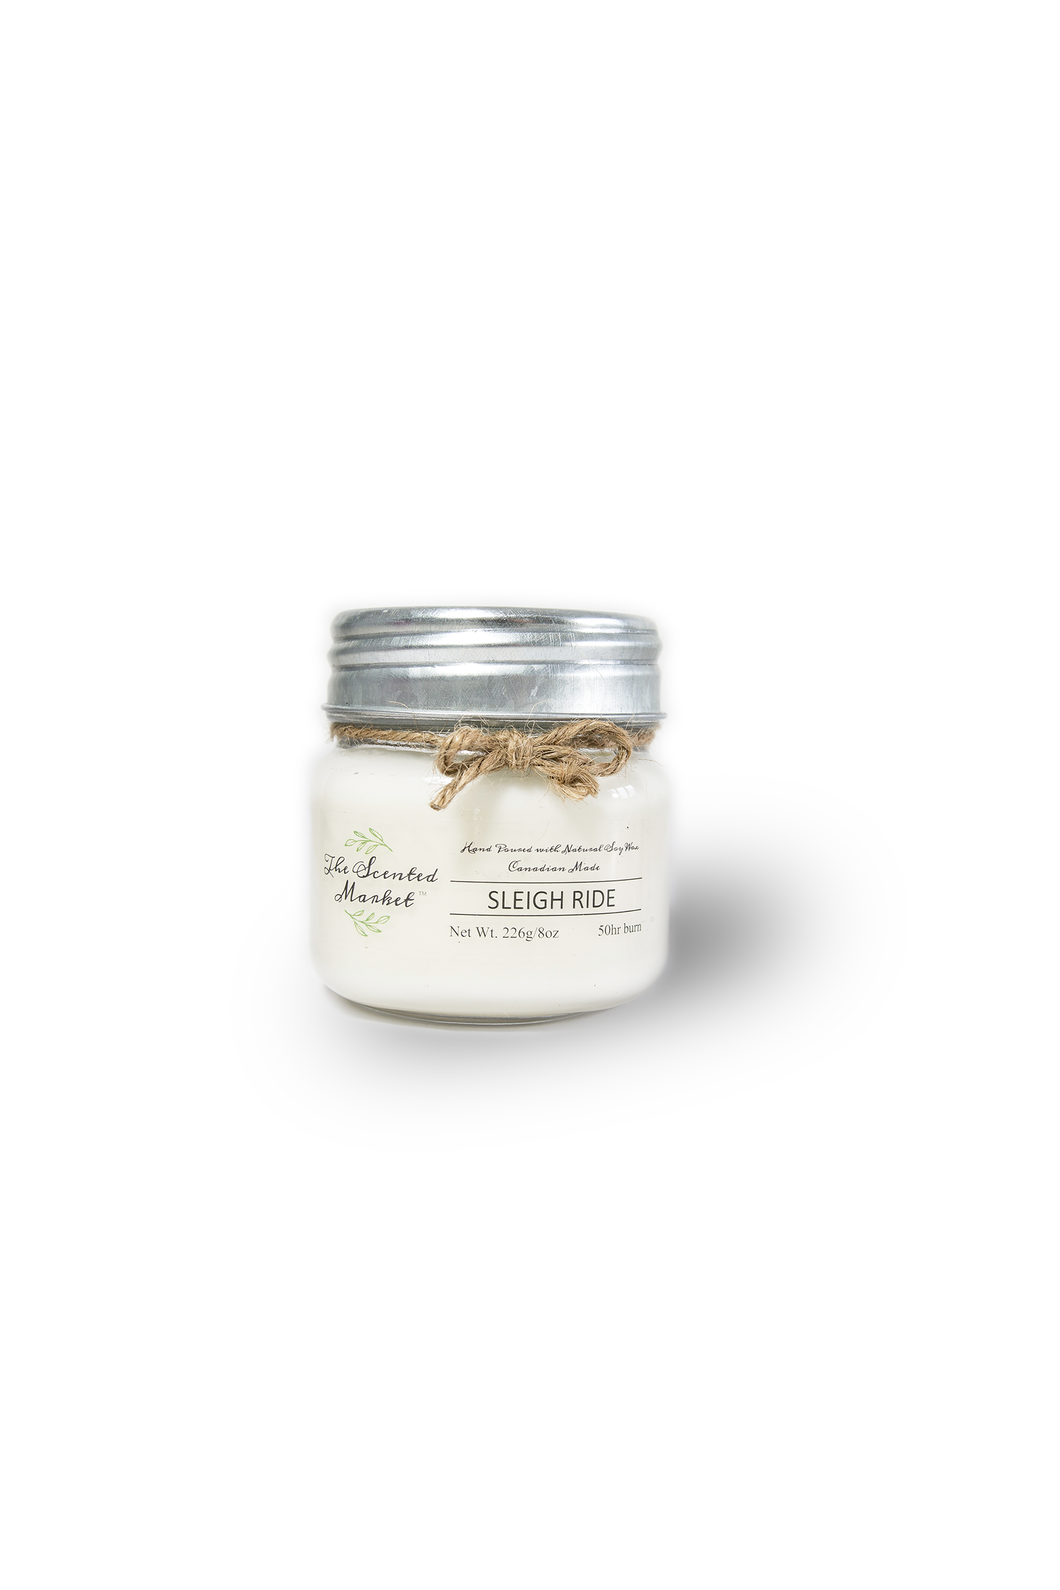 SLEIGH RIDE Soy Wax Candle 8 oz